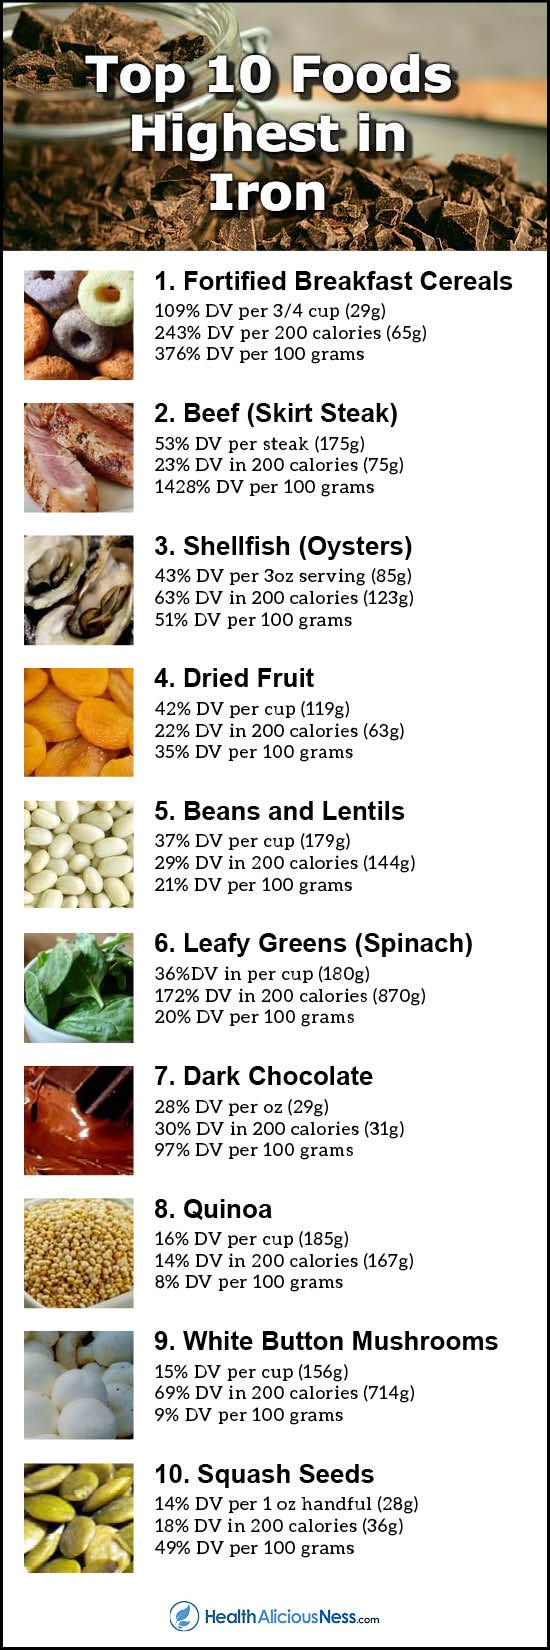 Iron rich foods include fortified cereals, beef, shellfish, dried fruit, beans, lentils, dark leafy greens, dark chocolate, quinoa, mushrooms, and squash seeds.